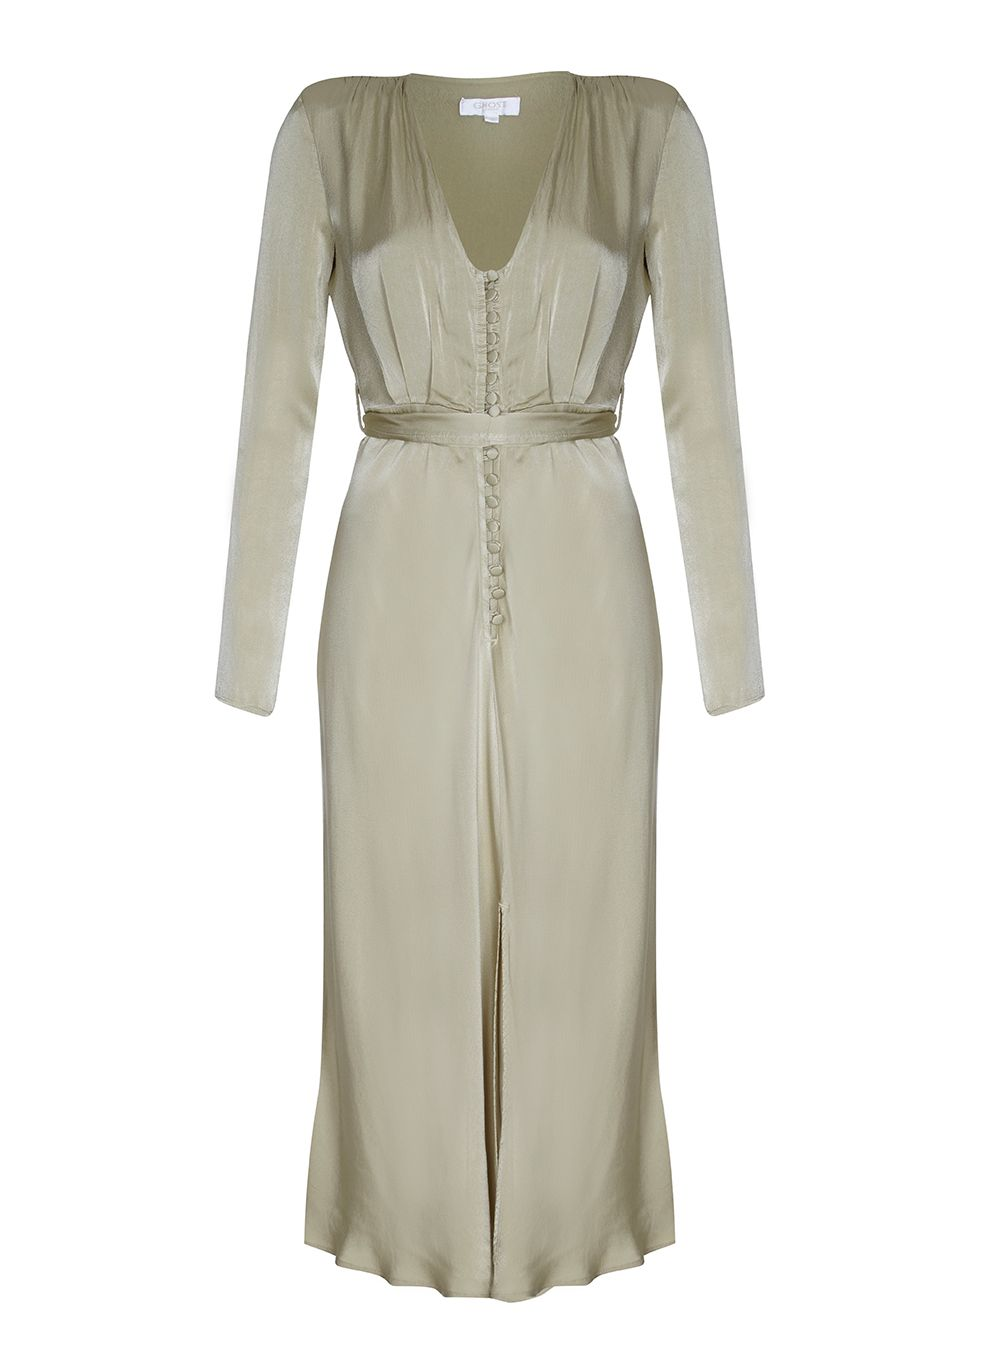 1940s Style Prom, Party, Cocktail Dresses Ghost Meryl Dress Lint Green £165.00 AT vintagedancer.com